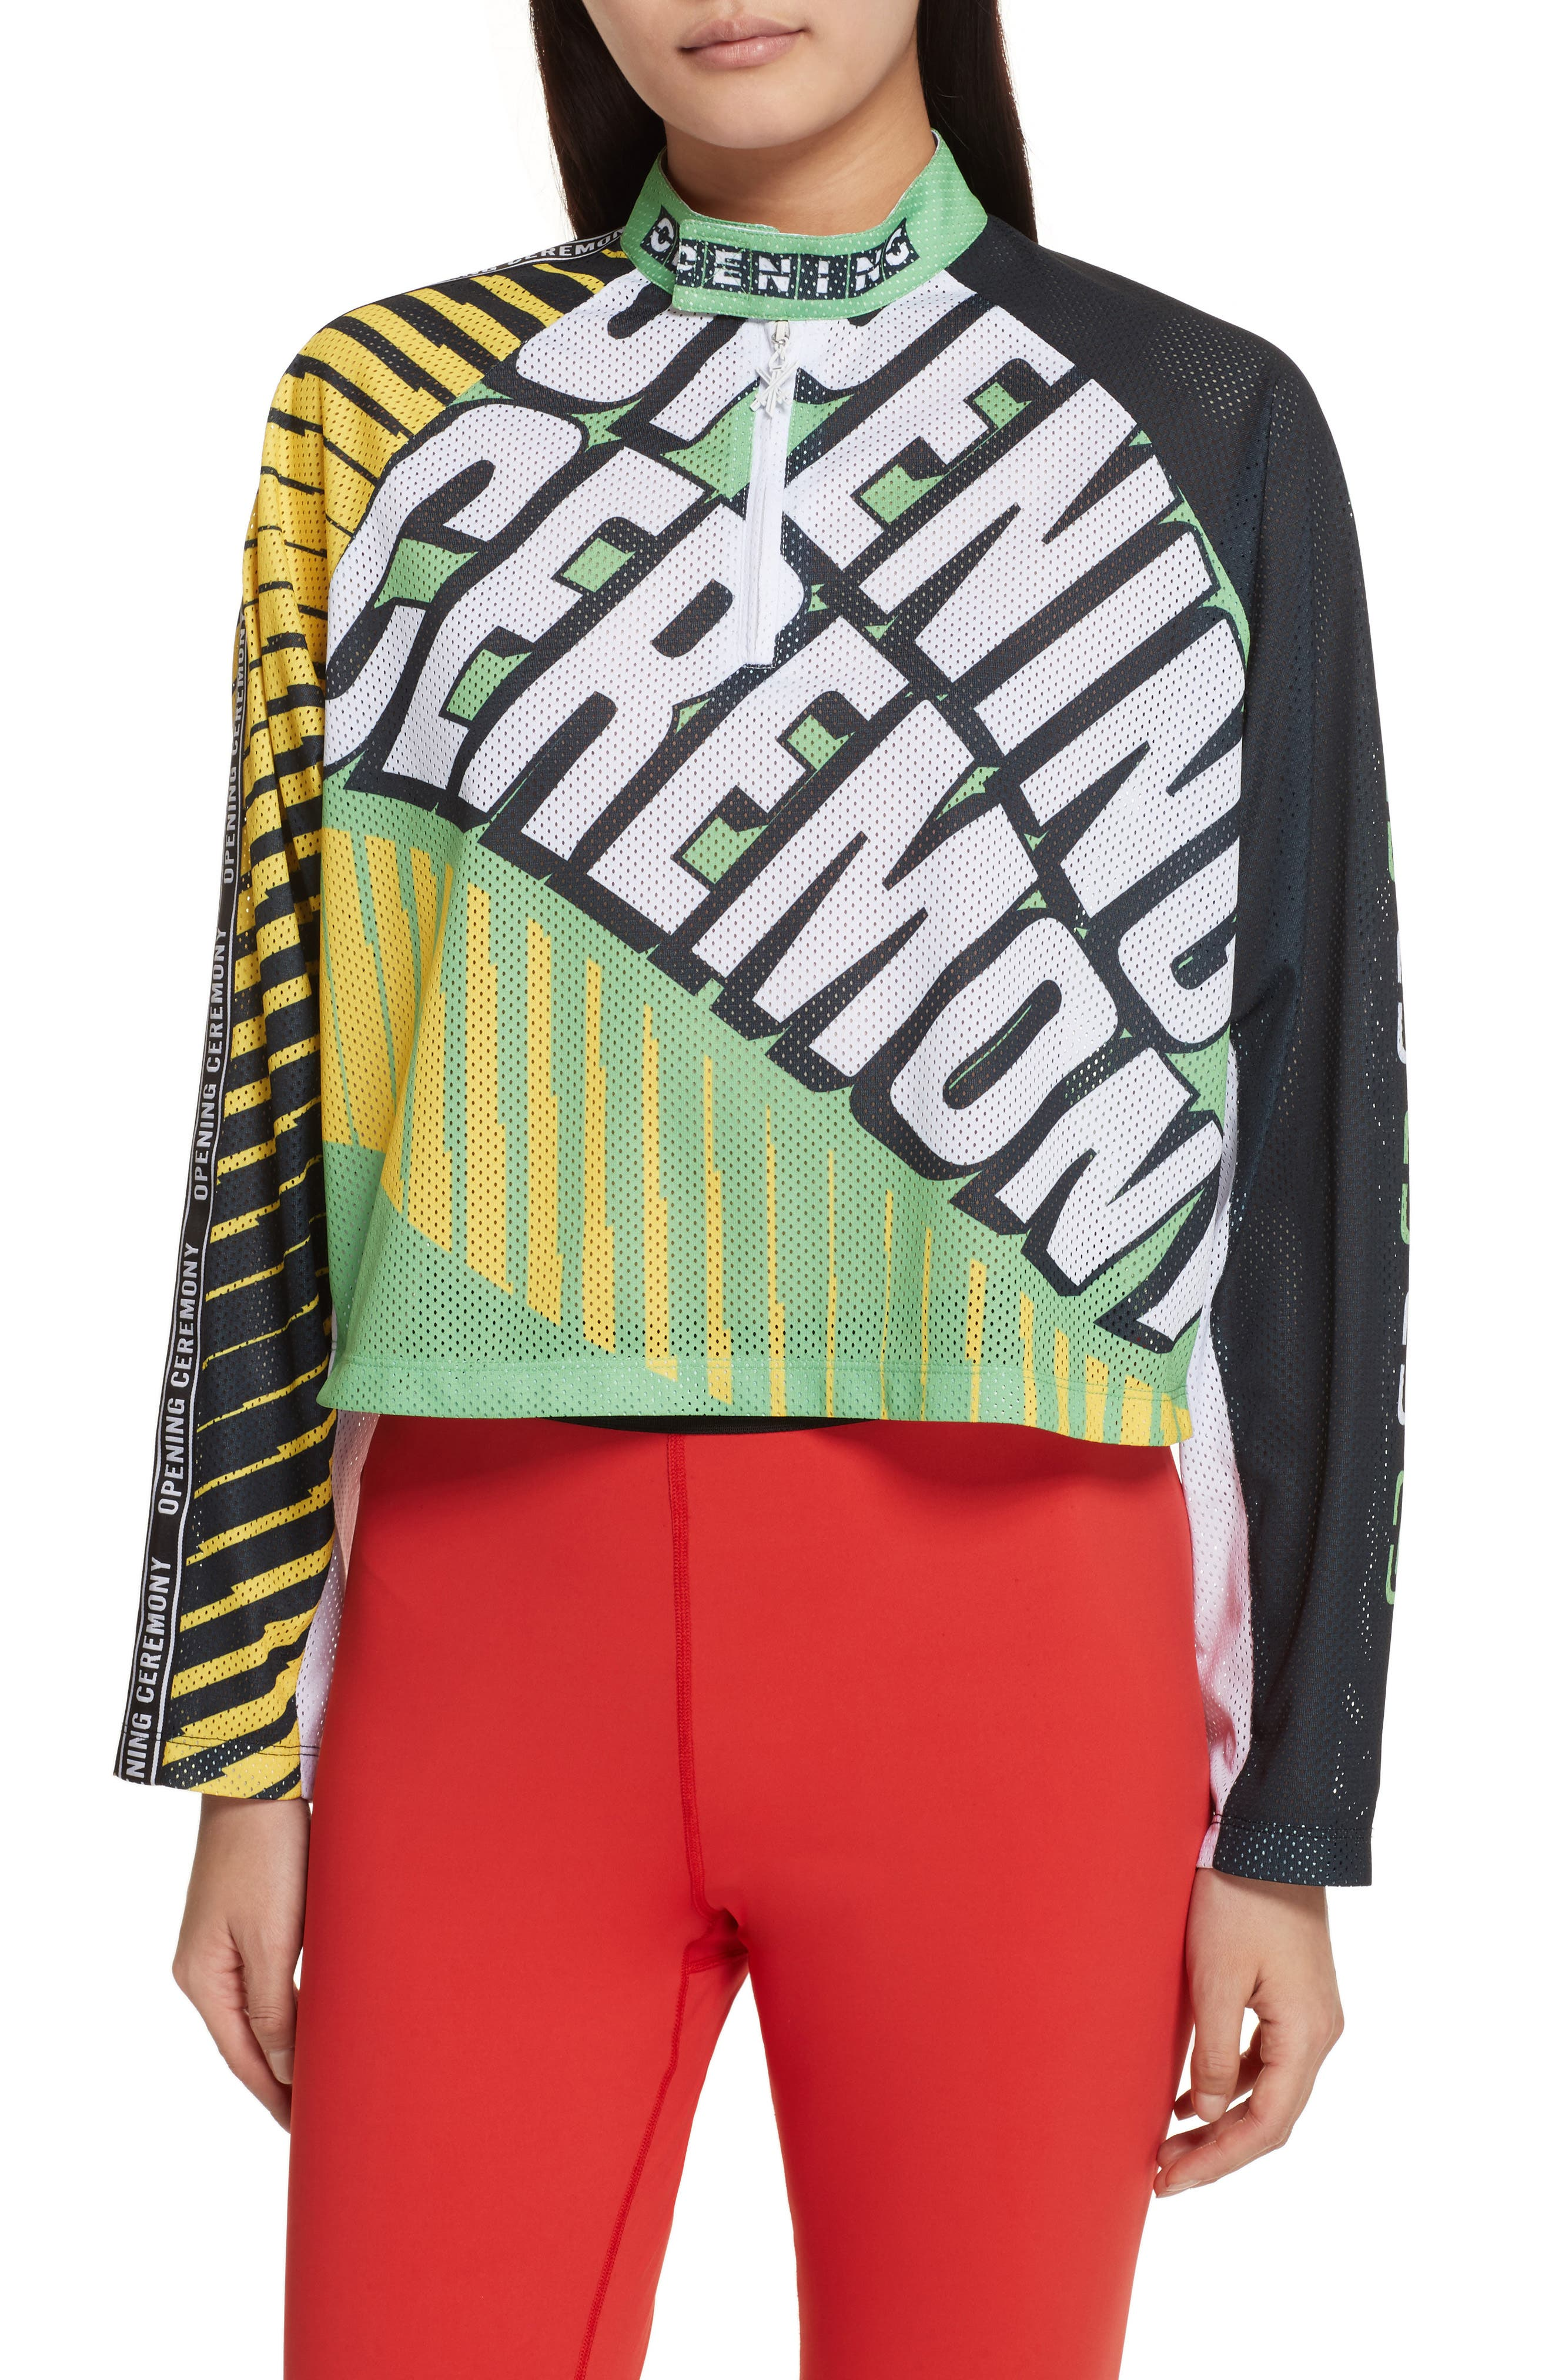 Main Image - Opening Ceremony Mesh Moto Crop Top (Limited Edition)